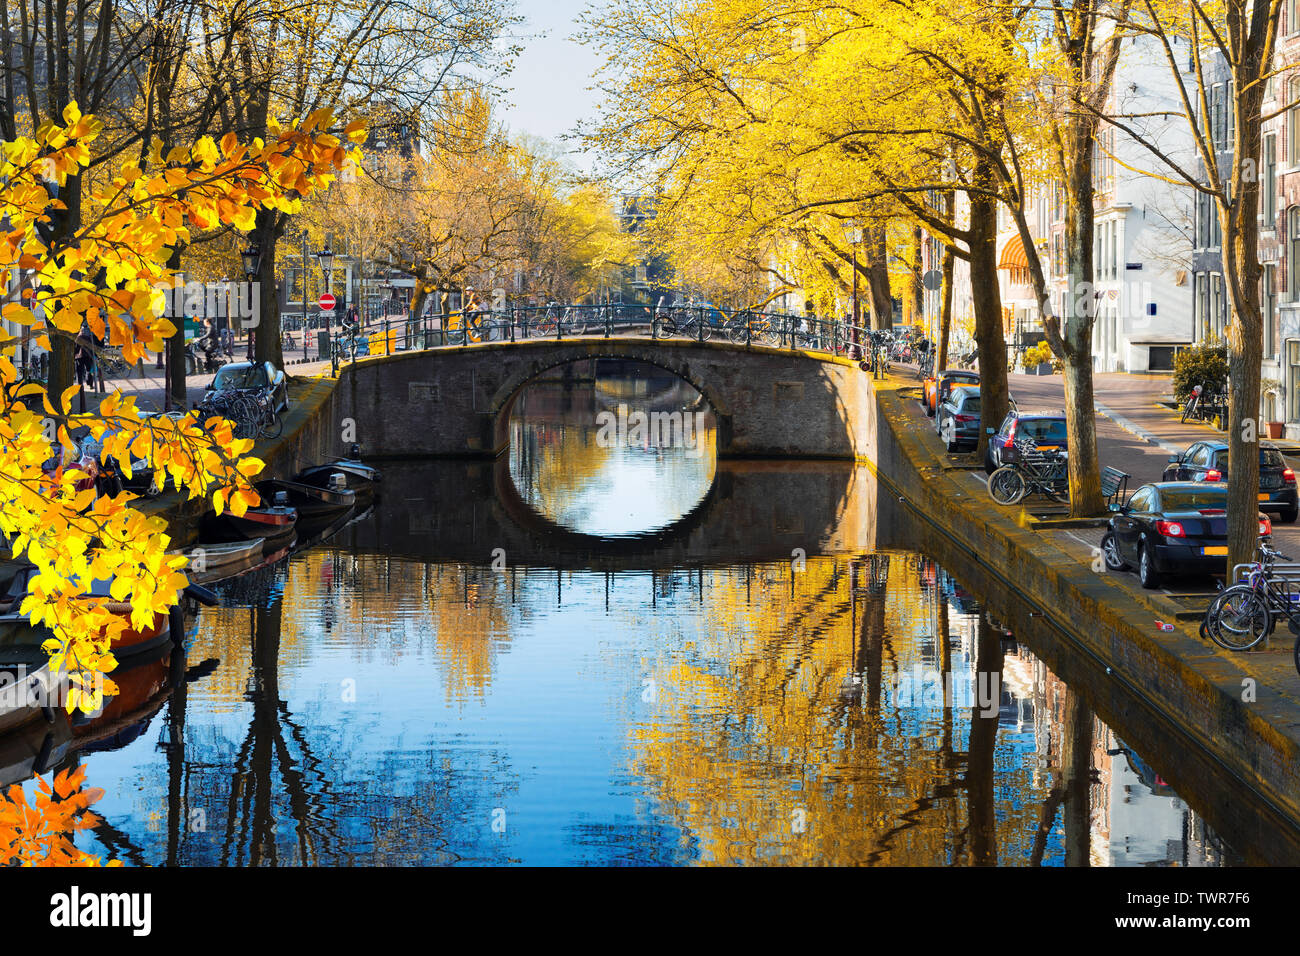 Bridge and tree over canal with mirror reflections, Amsterdam at fall, Netherlands - Stock Image